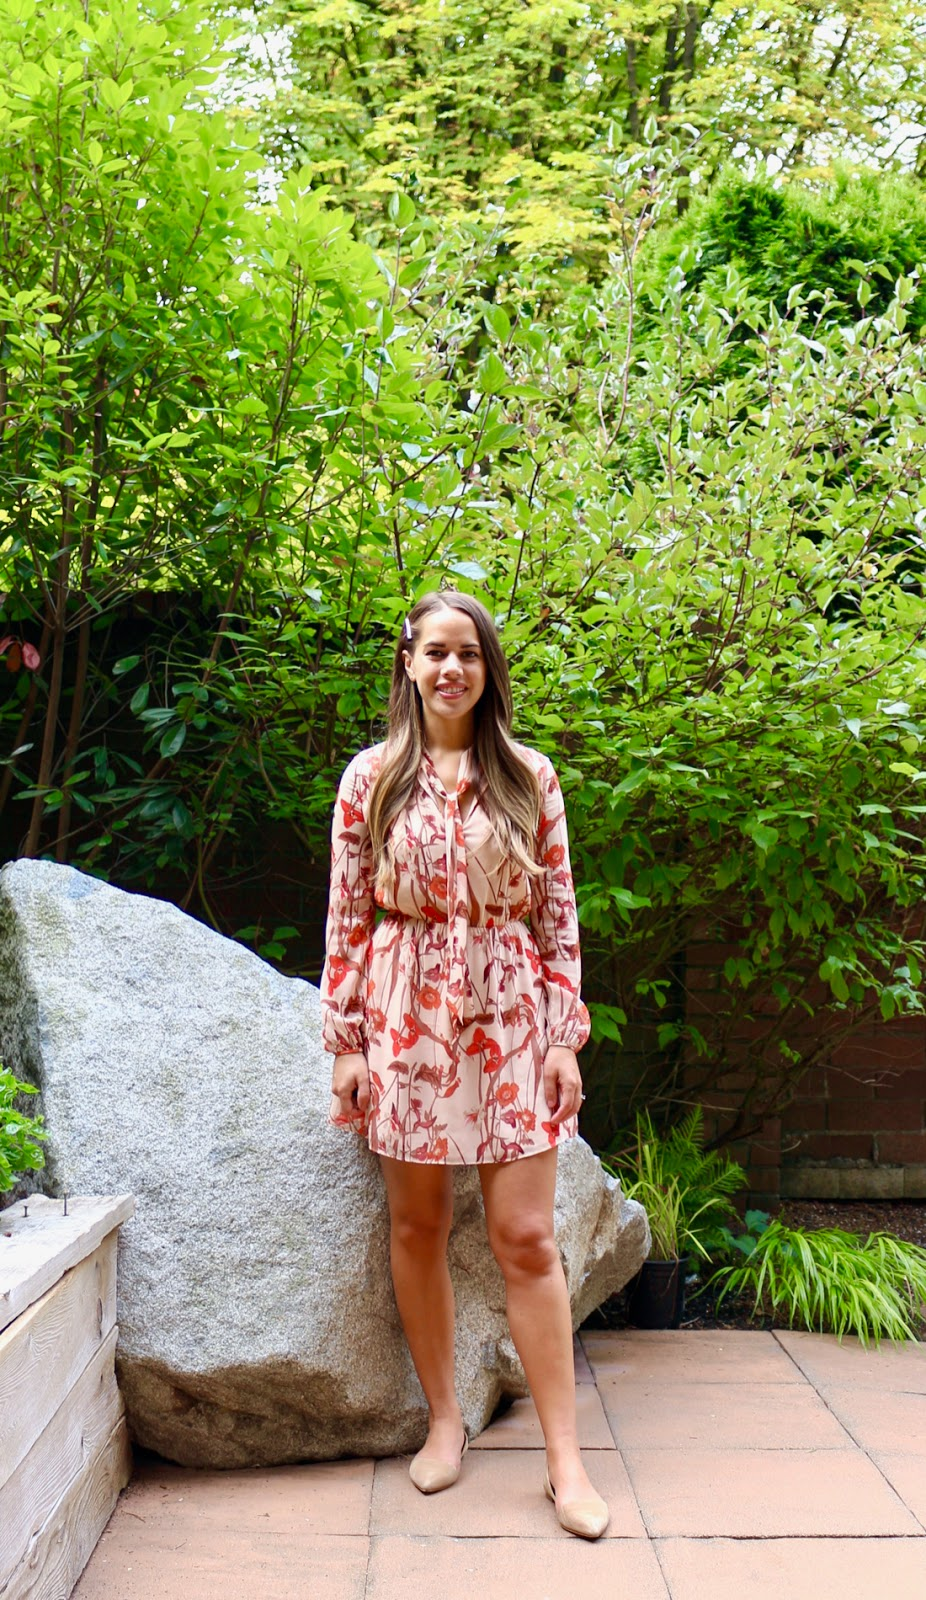 Jules in Flats -Aritzia Tie Neck Floral Dress (Business Casual Spring Workwear on a Budget)